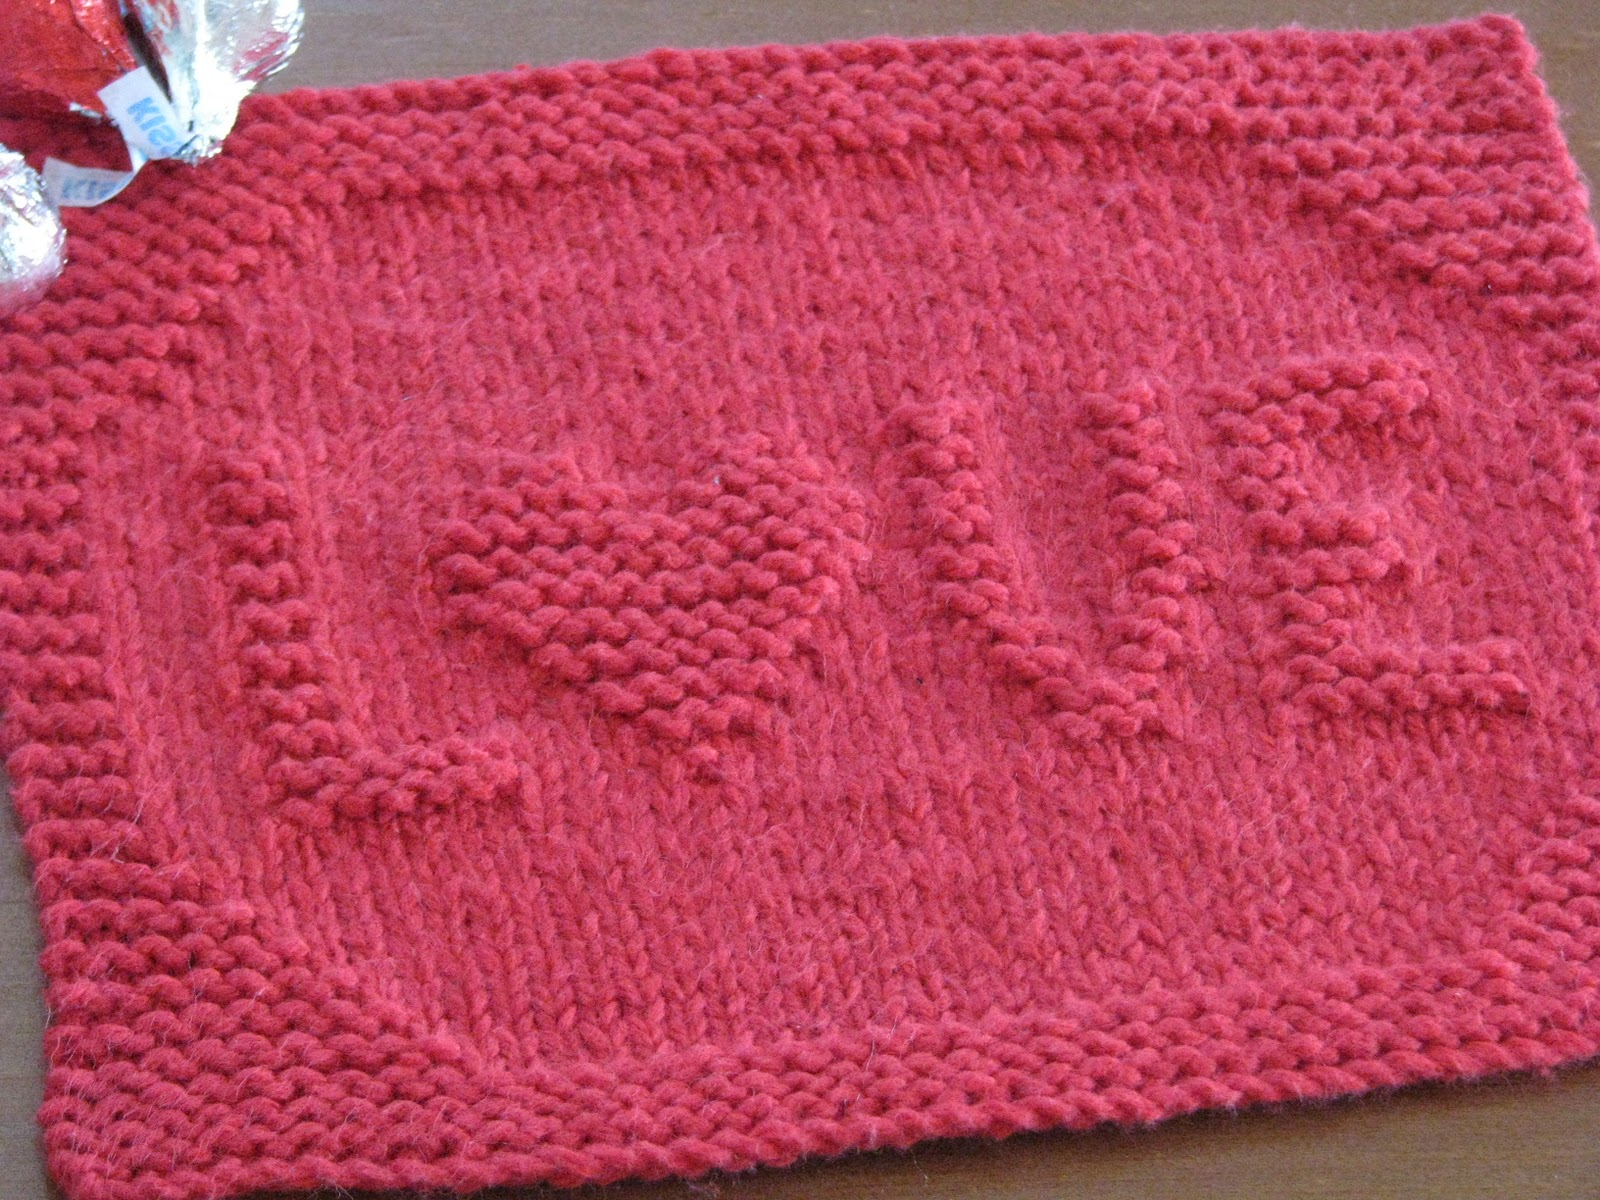 How To Knit Dishcloths Free Patterns : One Crafty Mama: LOVE Dishcloth